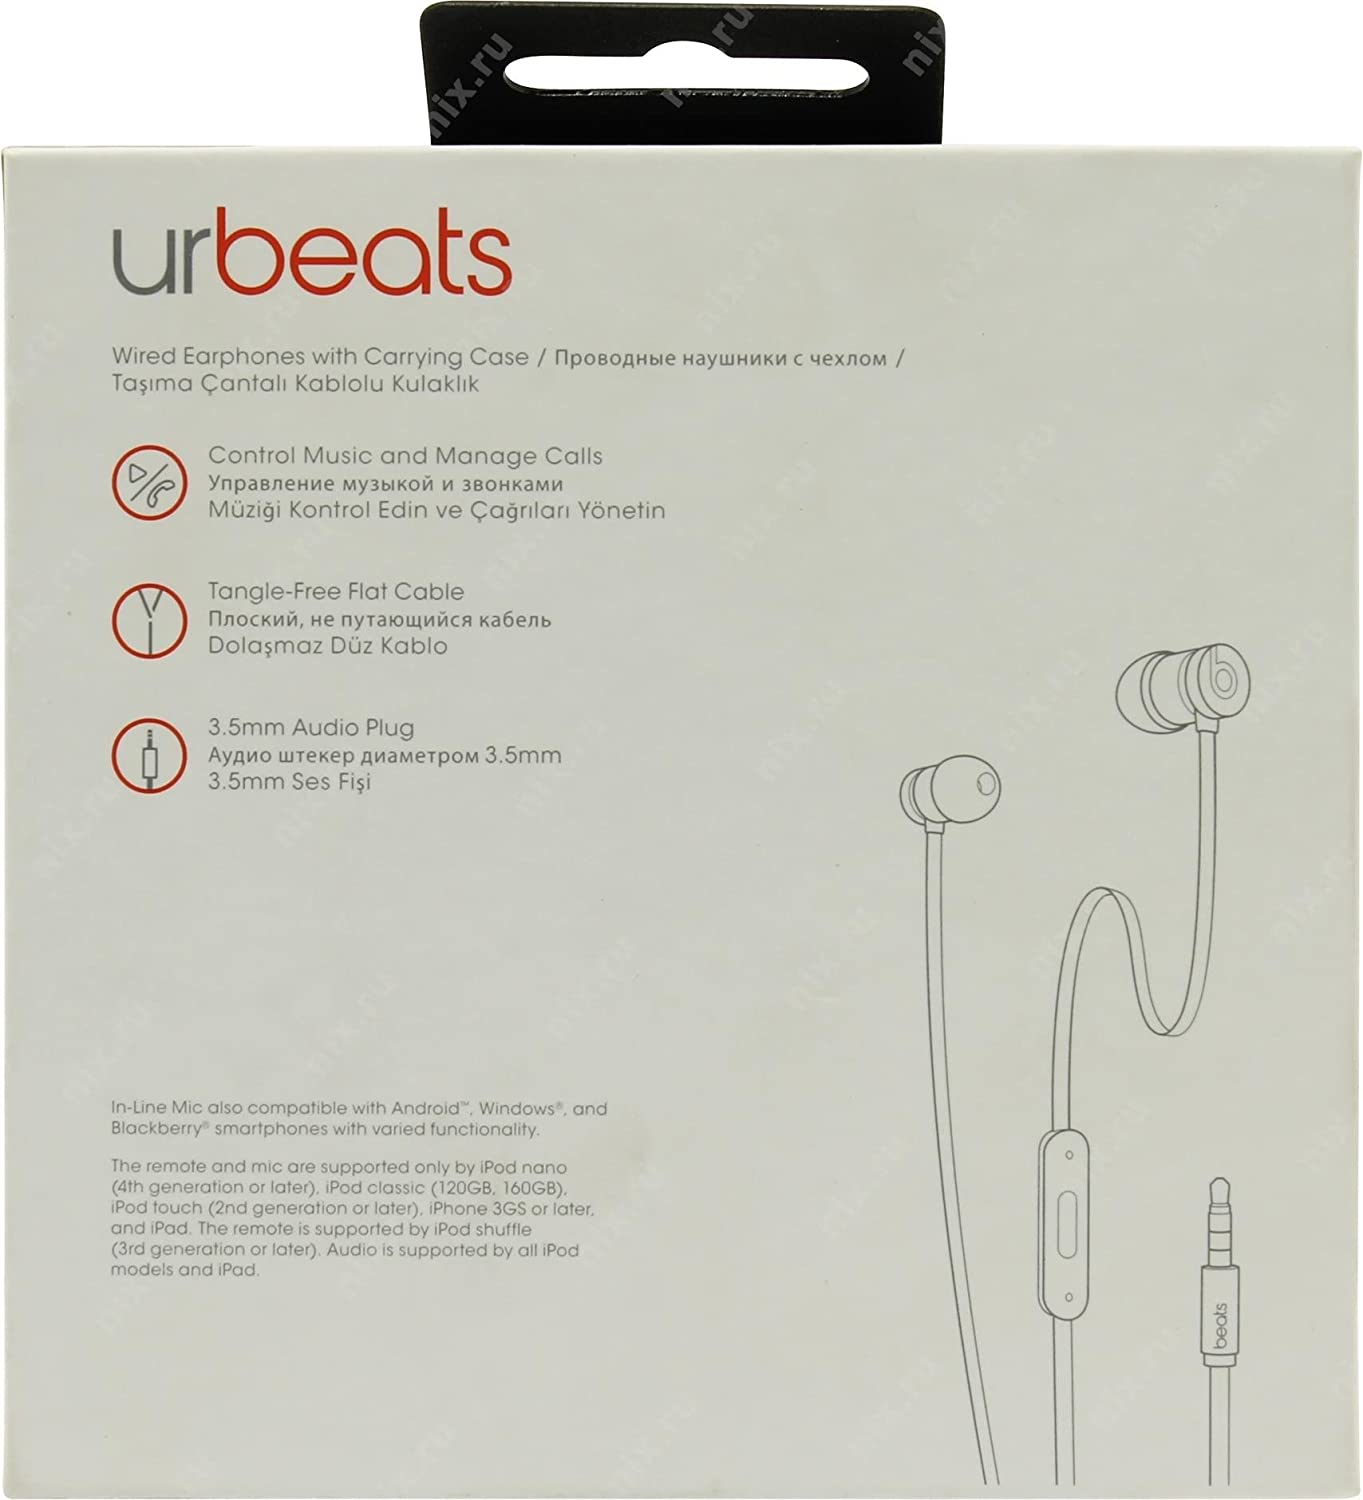 Monster Beats by DrDre, urBeats 2, in-ear headphones in: Amazon.co on rca plug polarity diagram, 3.5mm jack antenna, 3.5mm to handset wiring-diagram, at&t u-verse connection diagram, 3.5mm stereo jack wiring, 3.5mm splitter cable, surround sound hook up diagram, 3.5mm jack dimensions, audio jack diagram, 3.5mm plug, dre headset jack diagram, ac plug diagram, trs connector diagram, 3.5mm jack repair, 3.5mm mono splitter, microphone circuit diagram, rj 11 jack diagram, 3.5mm to 3.5mm, microphone connection diagram, 3.5mm pinout,